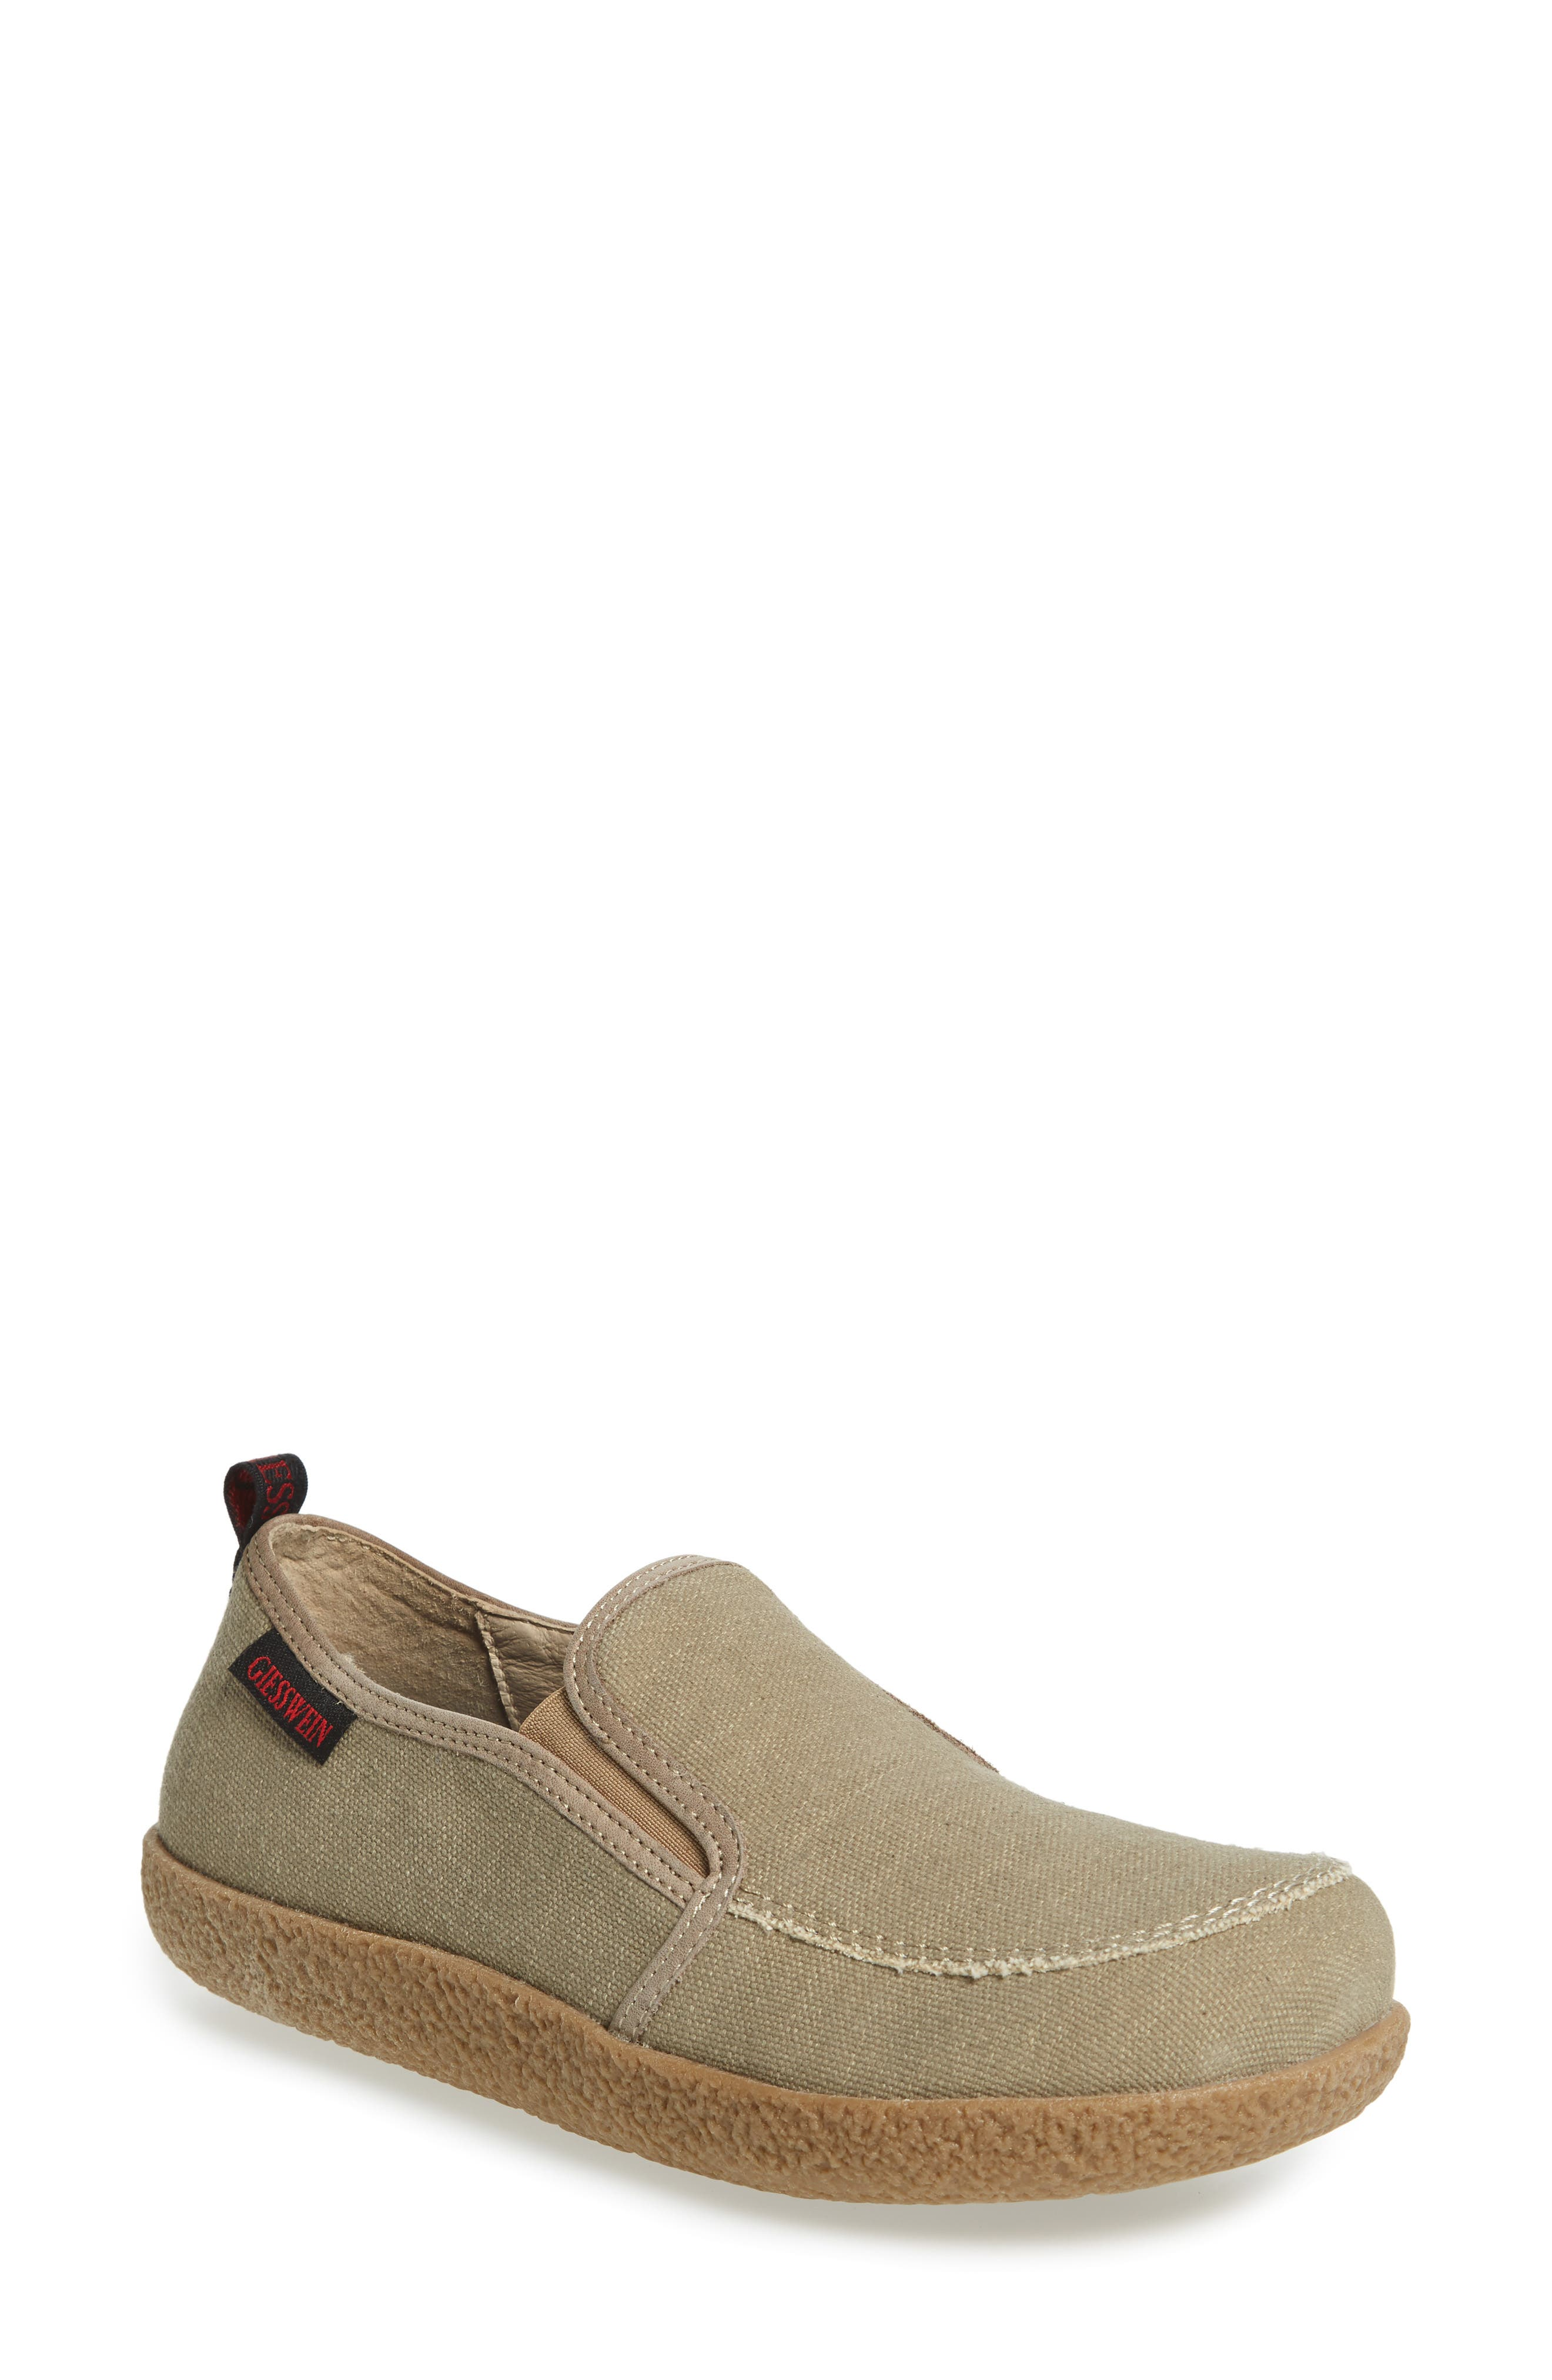 Reith Loafer,                             Main thumbnail 1, color,                             250